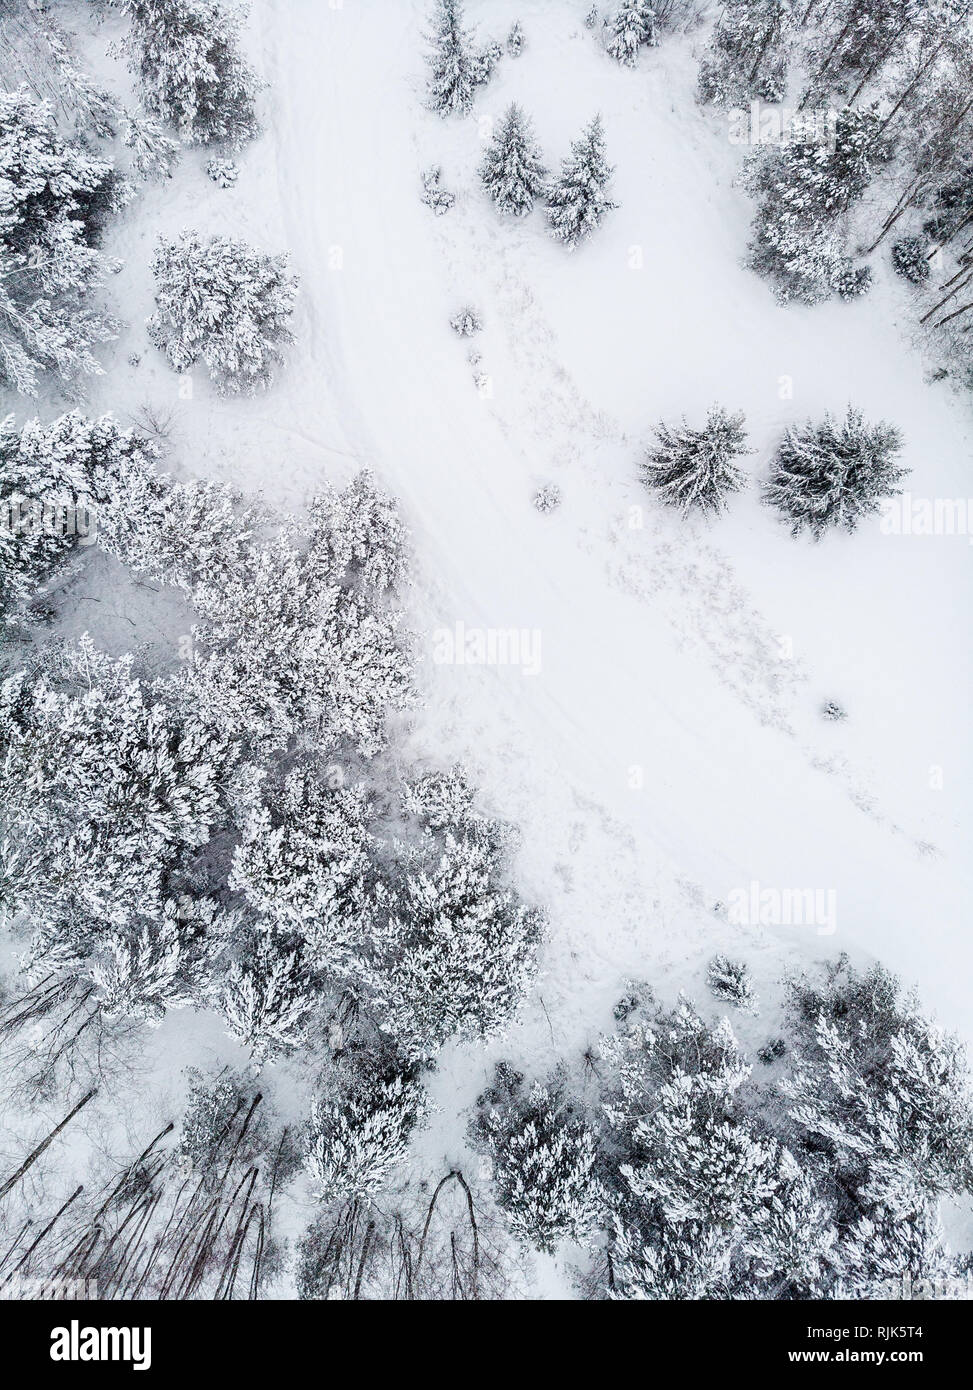 Winter road from drone perspective - Stock Image